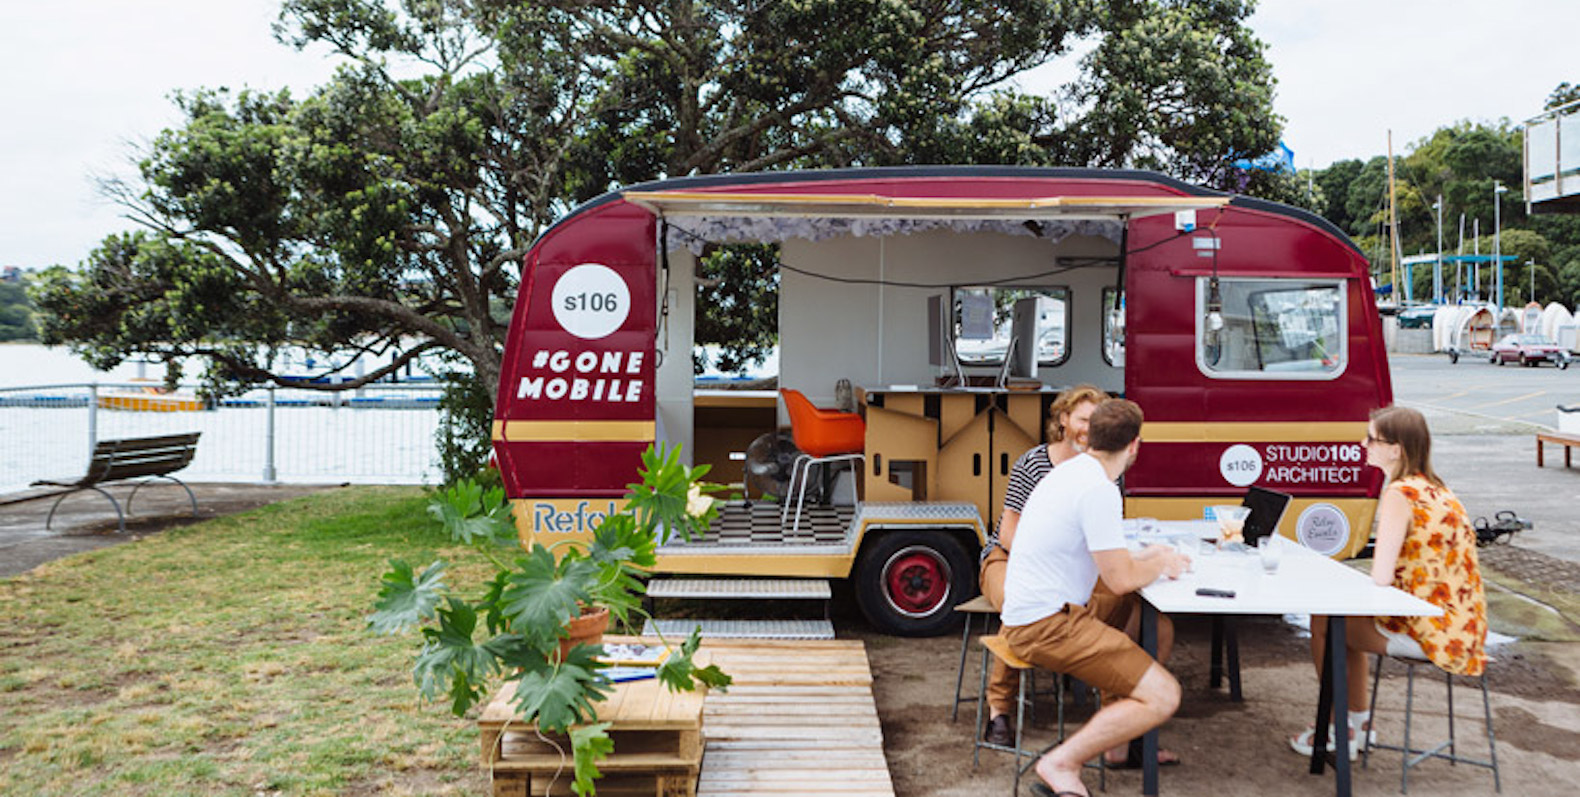 Architects escape into the great outdoors by transforming a retro caravan into a mobile office